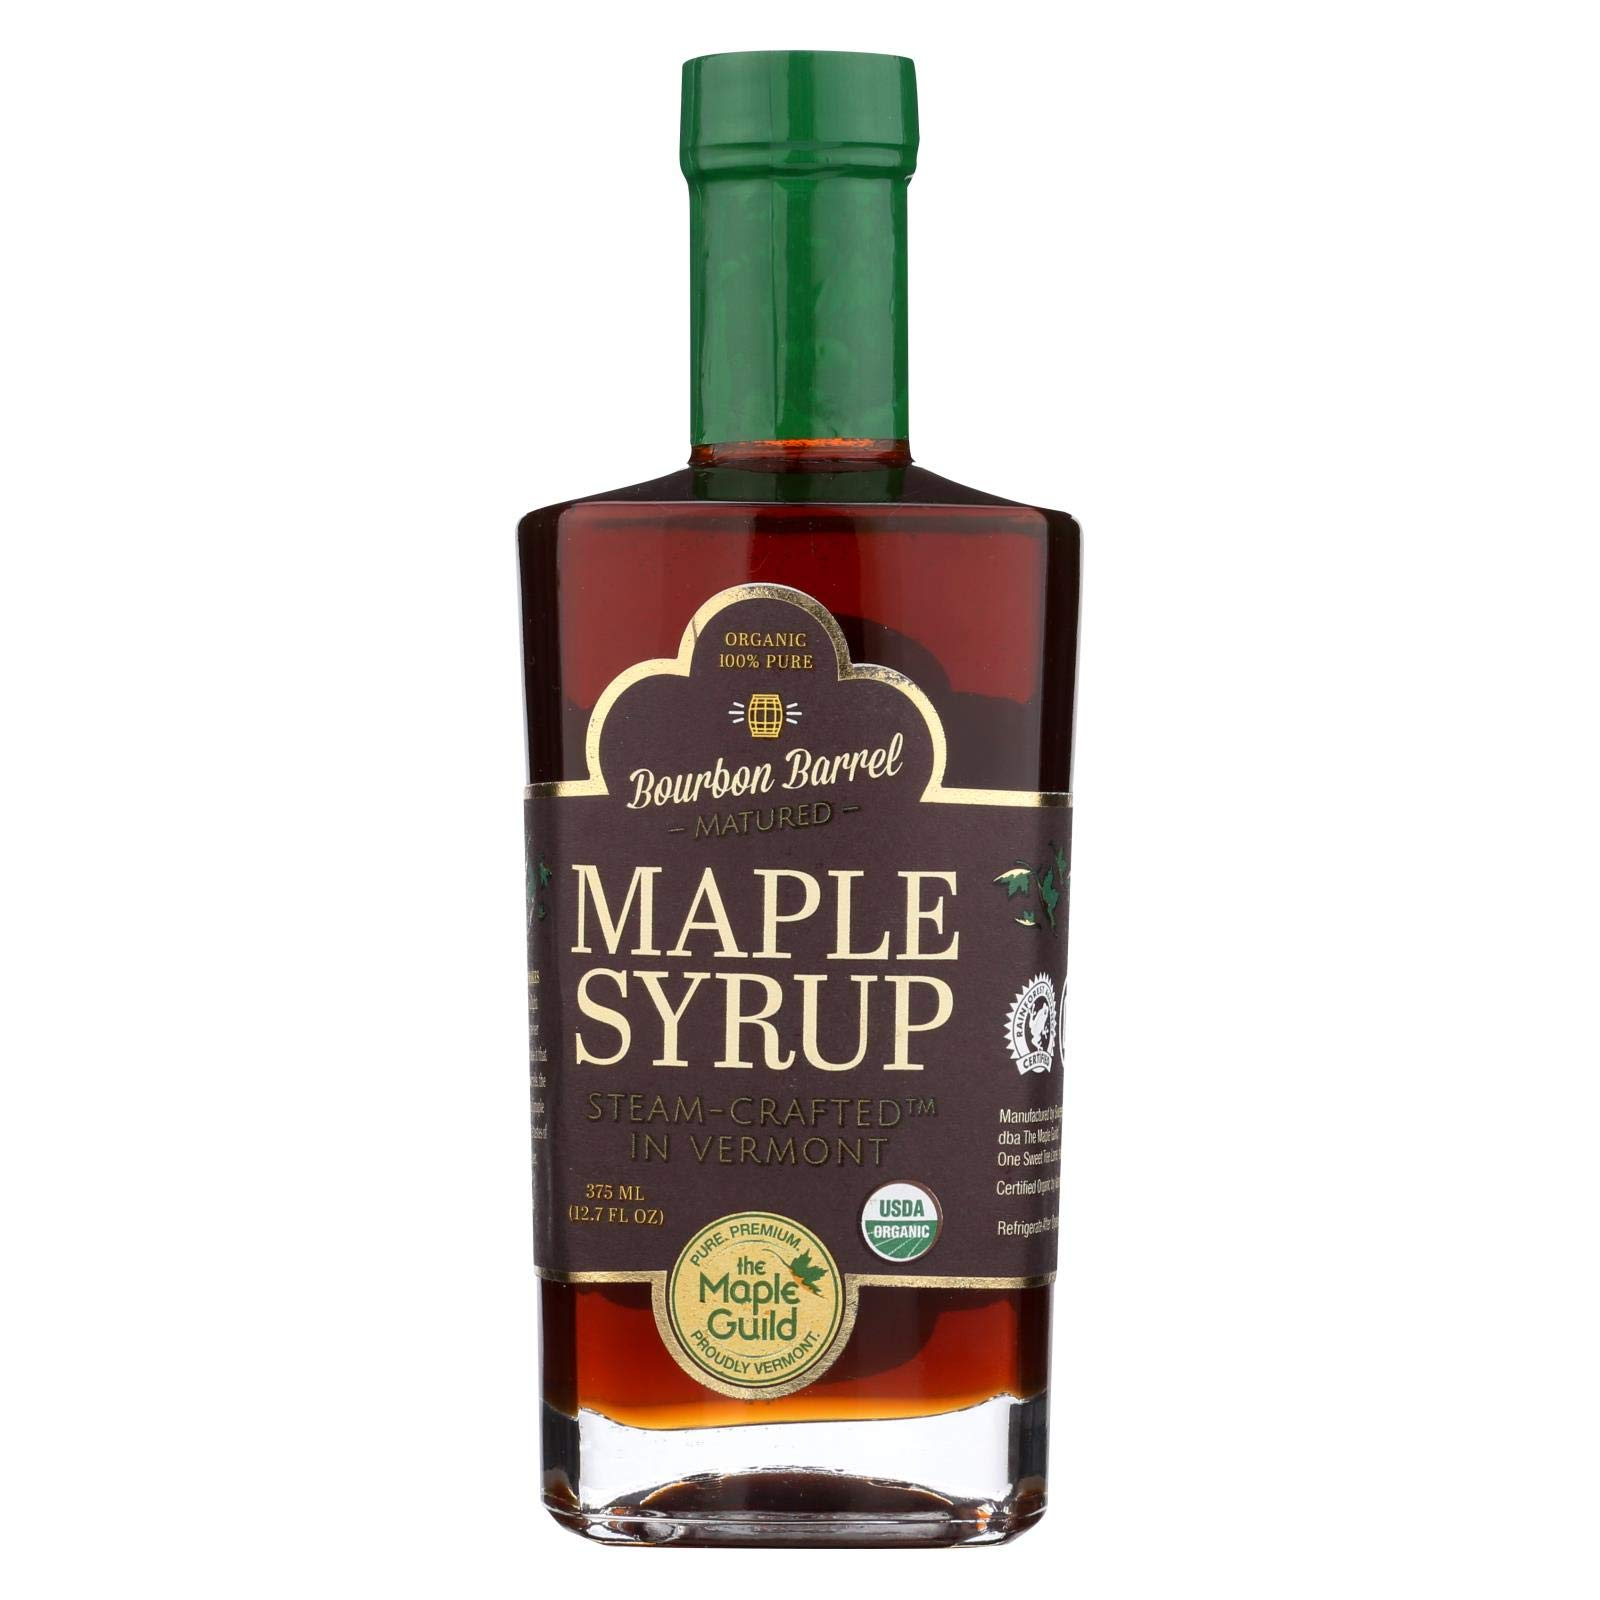 THE MAPLE GUILD, Organic Syrup, Bourbon Barrel Aged, Pack of 6, Size 375 ML, (Gluten Free Kosher 95%+ Organic)